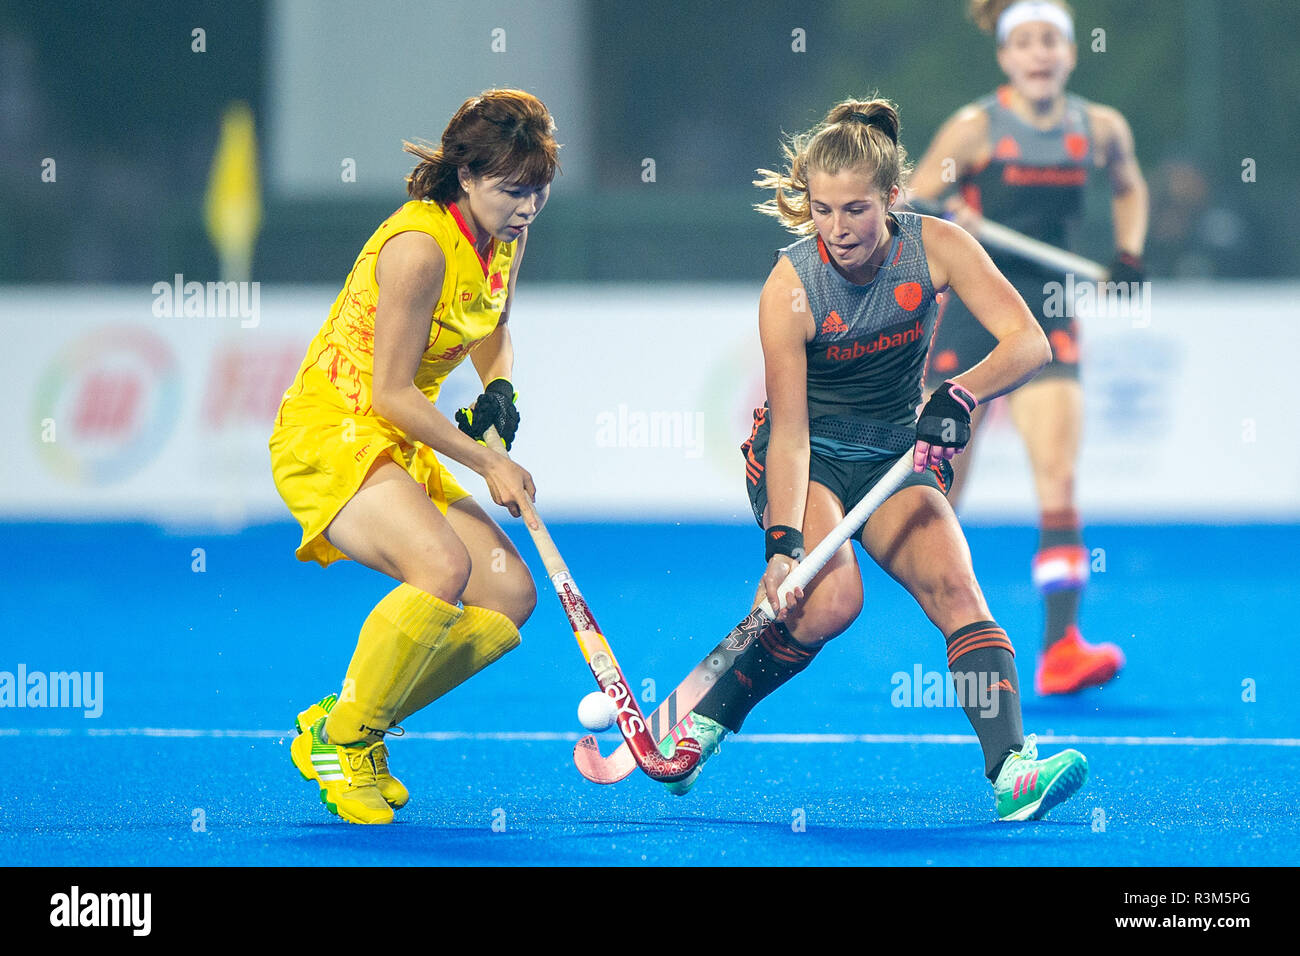 Changzhou, China 24 November 2018 Champions Trophy: Netherlands v China Xan de Waard of The Netherlands Credit: Orange Pictures vof/Alamy Live News Stock Photo